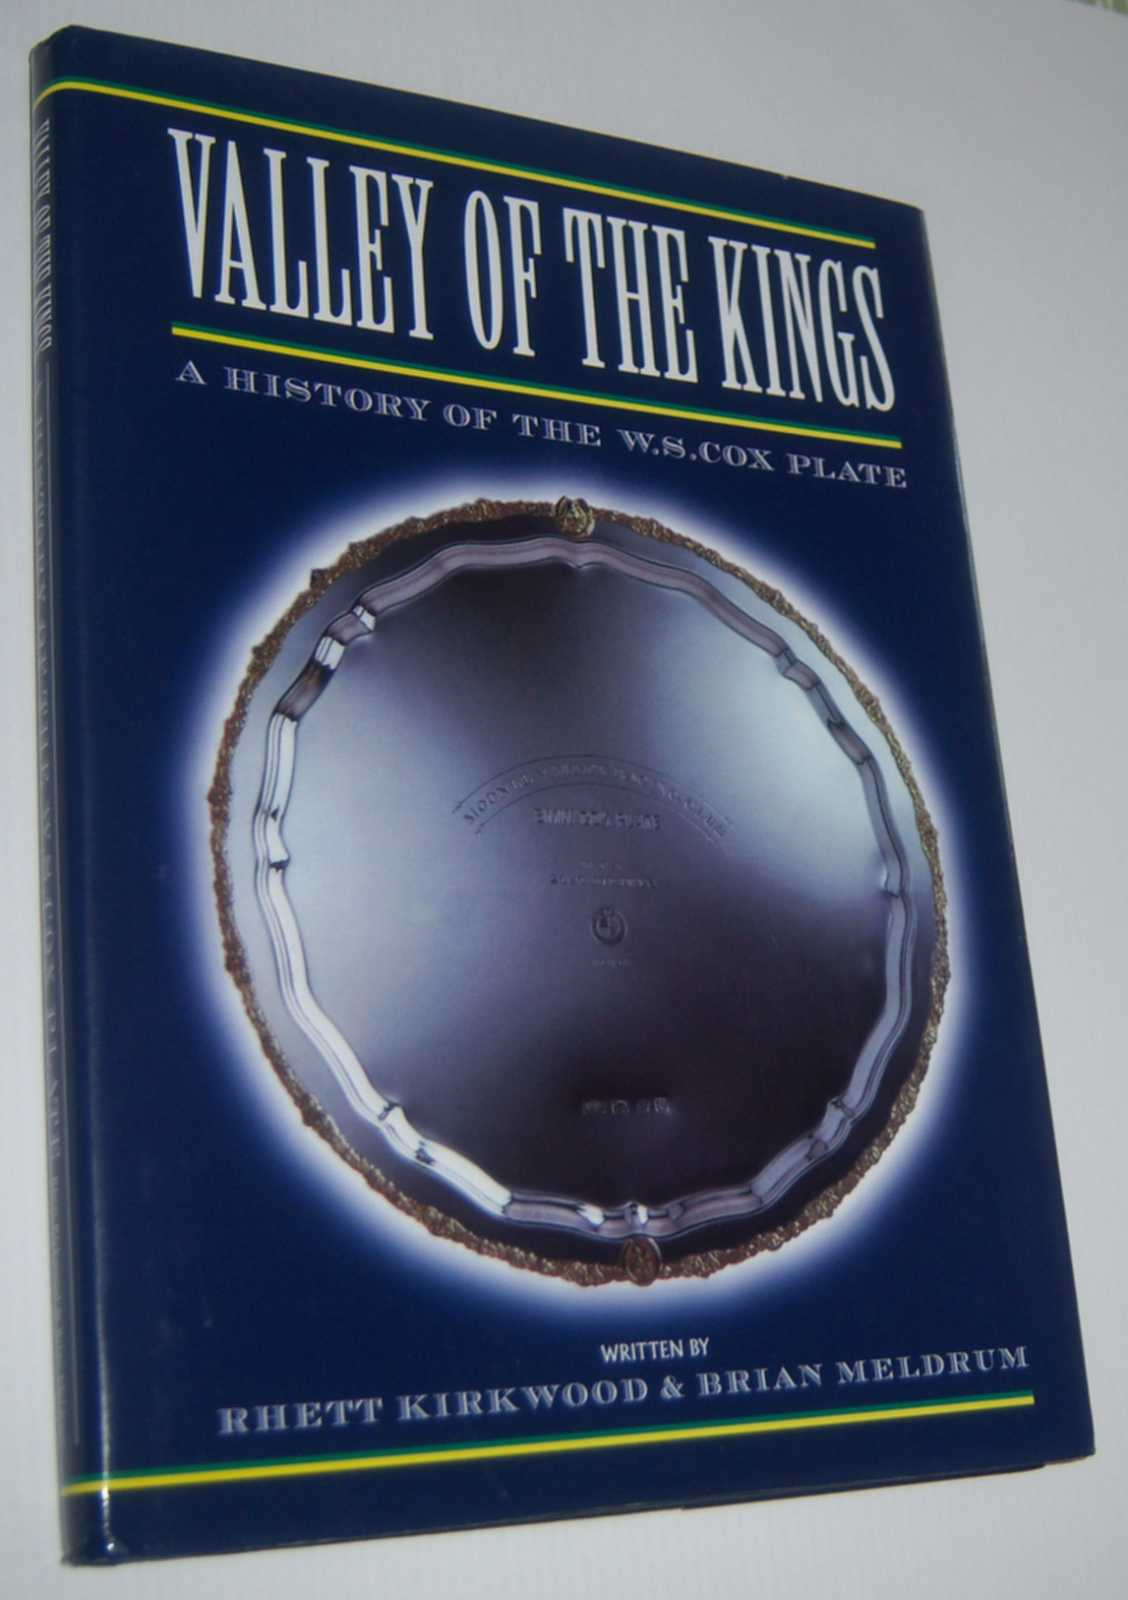 VALLEY OF THE KINGS: A History of the W.S. Cox Plate